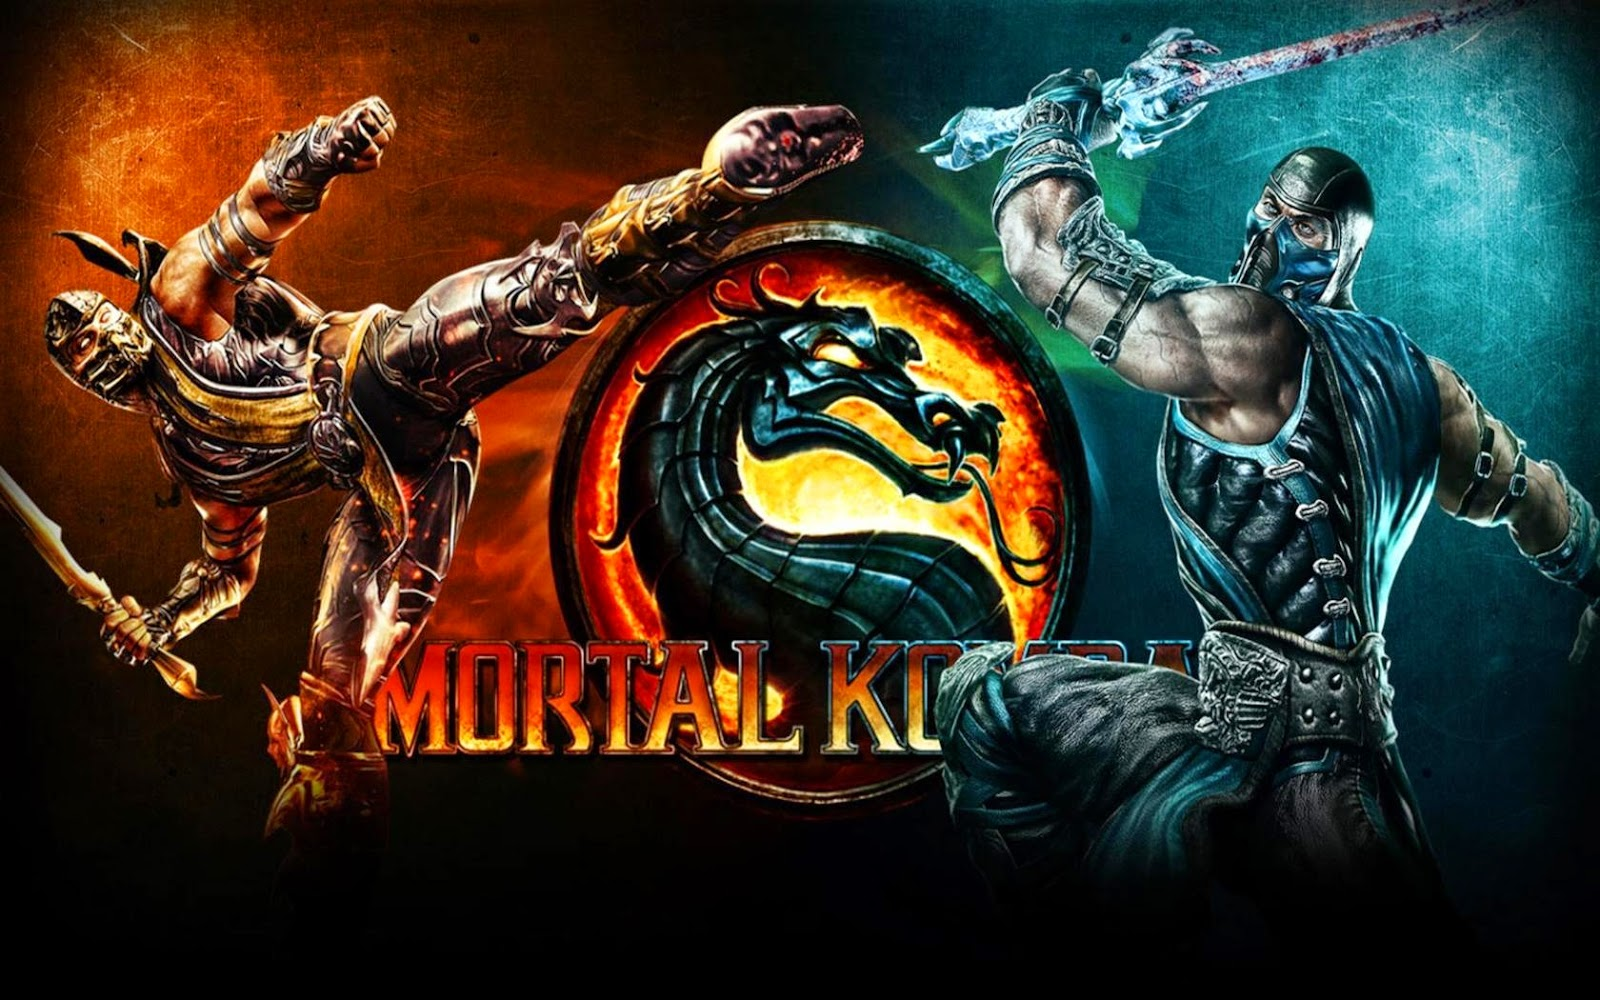 Mortal kombat x apk _v1. 14. 0. Apk with mega mod + obb [all gpu.